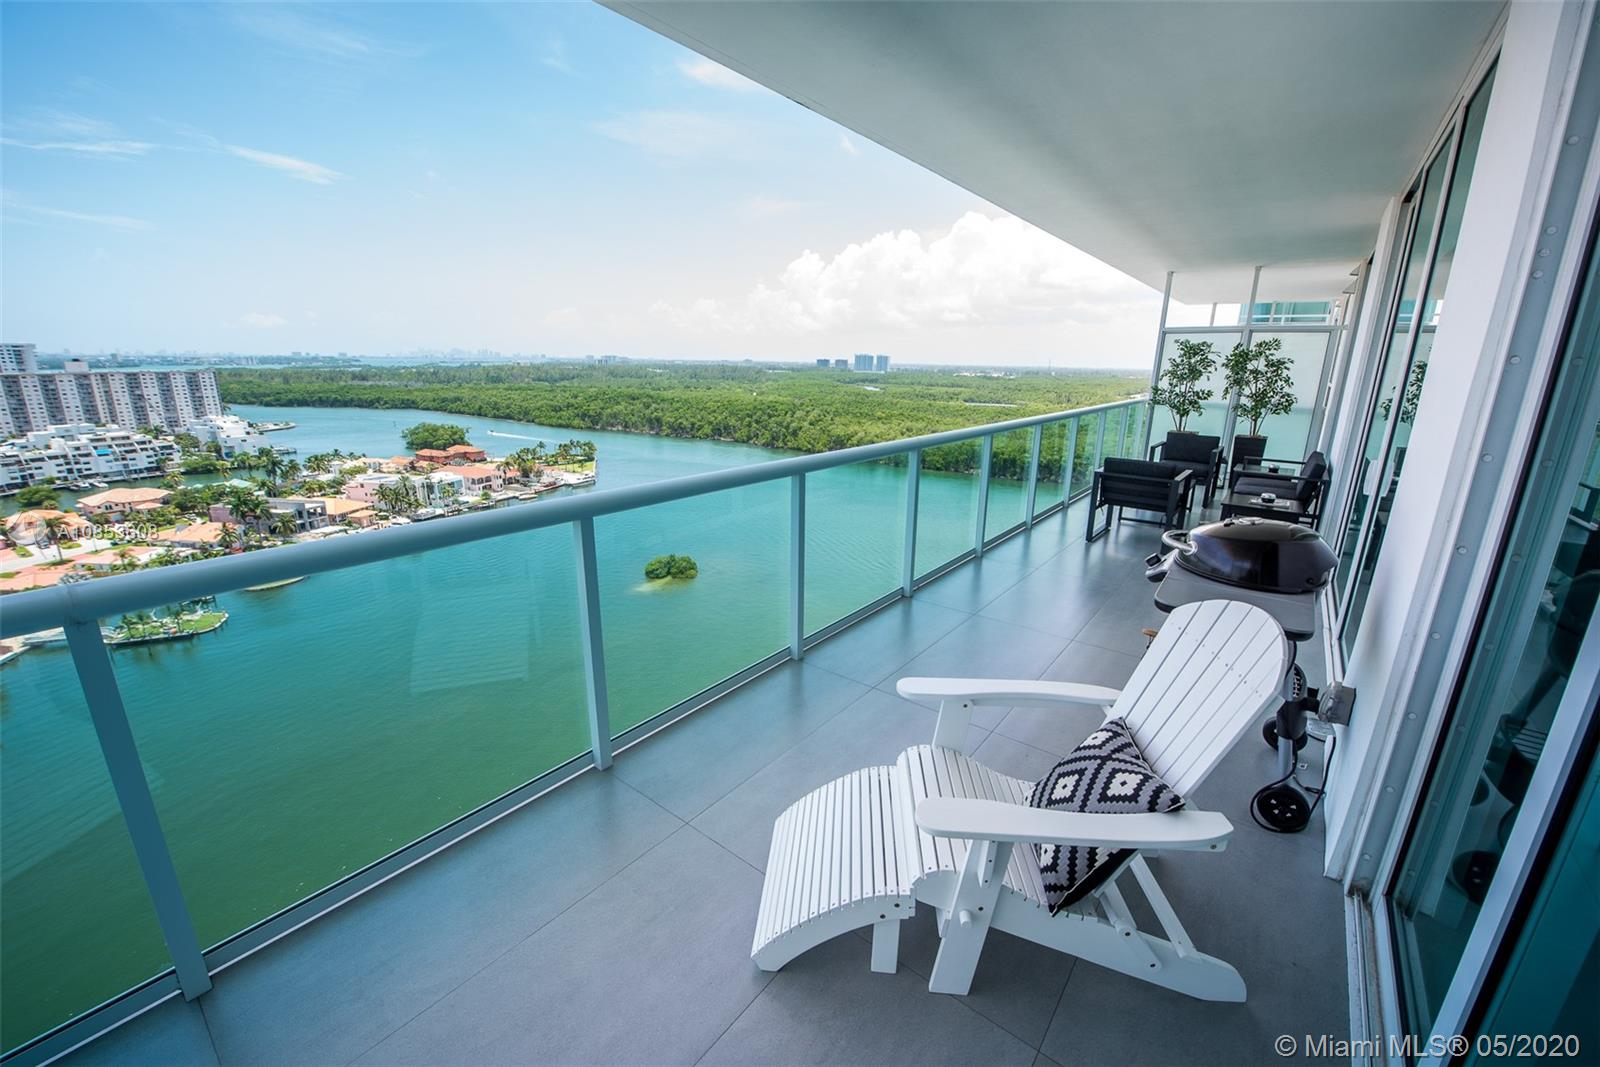 Amazing 2 bed ( suites) + den with bathroom. Beautiful views of intercostal and the ocean. Kitchen with top of line appliances. Beautiful decorated and fully equipped.